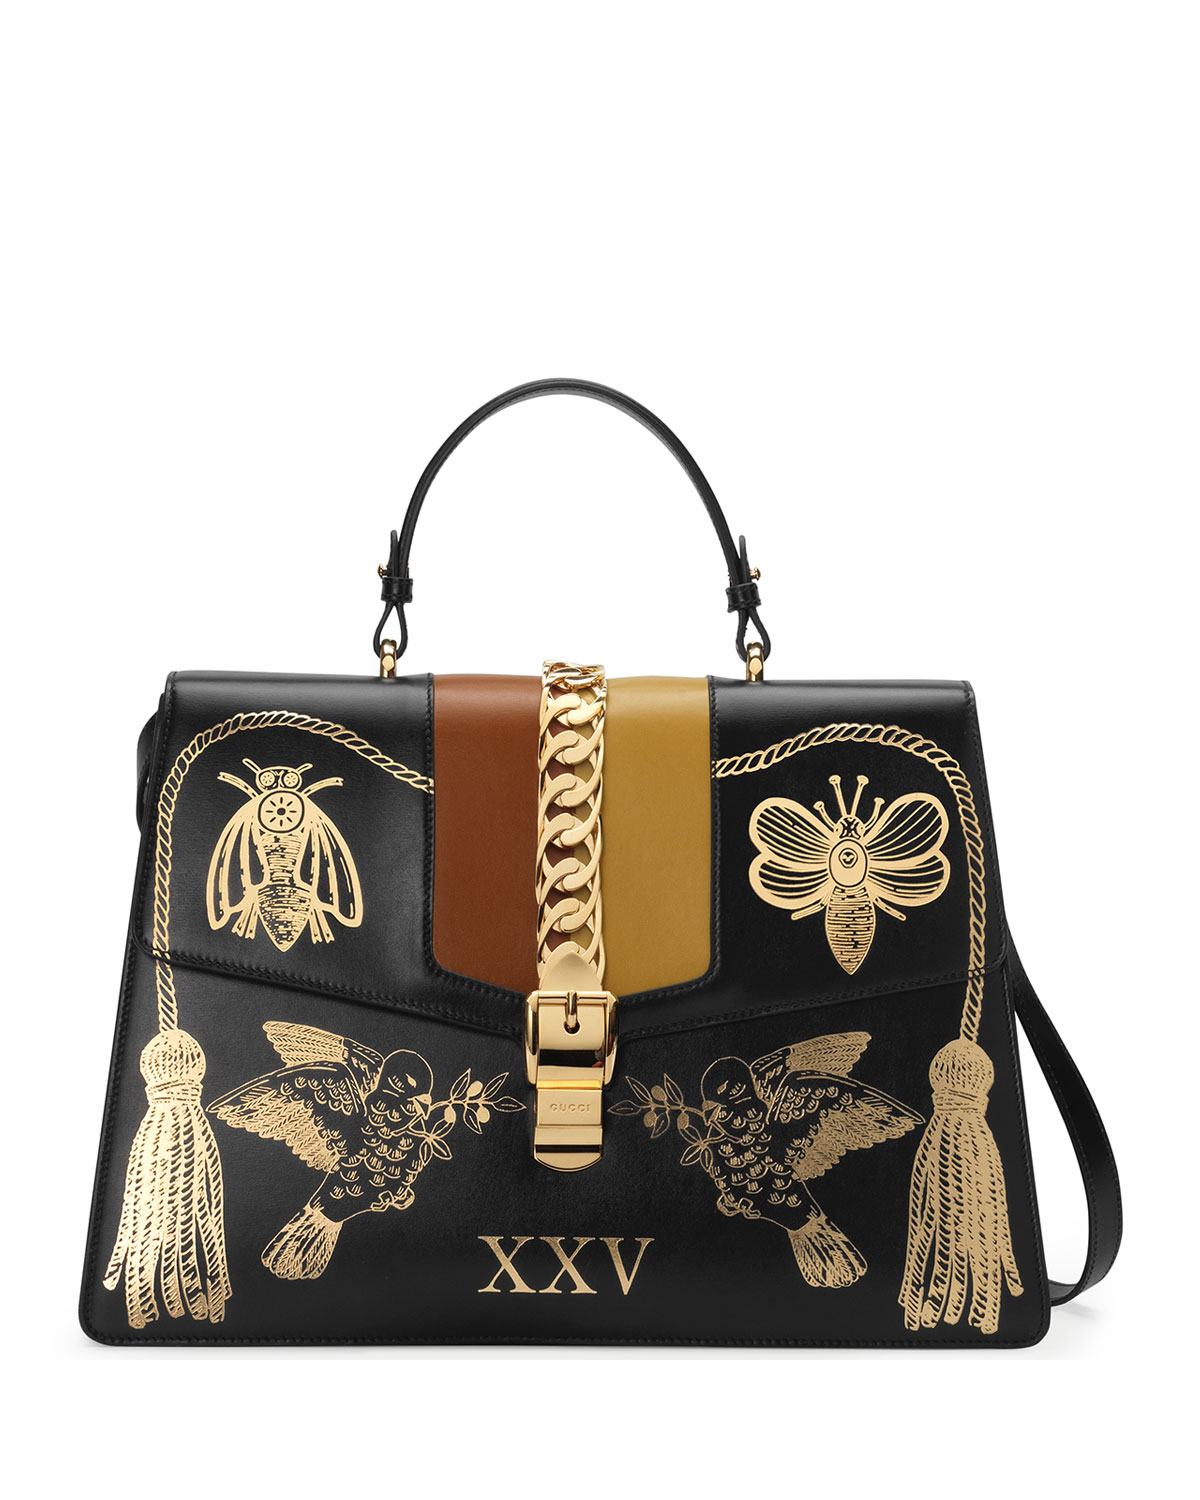 6d513f35db8 Gucci Sylvie Maxi Insects Leather Top-Handle Bag